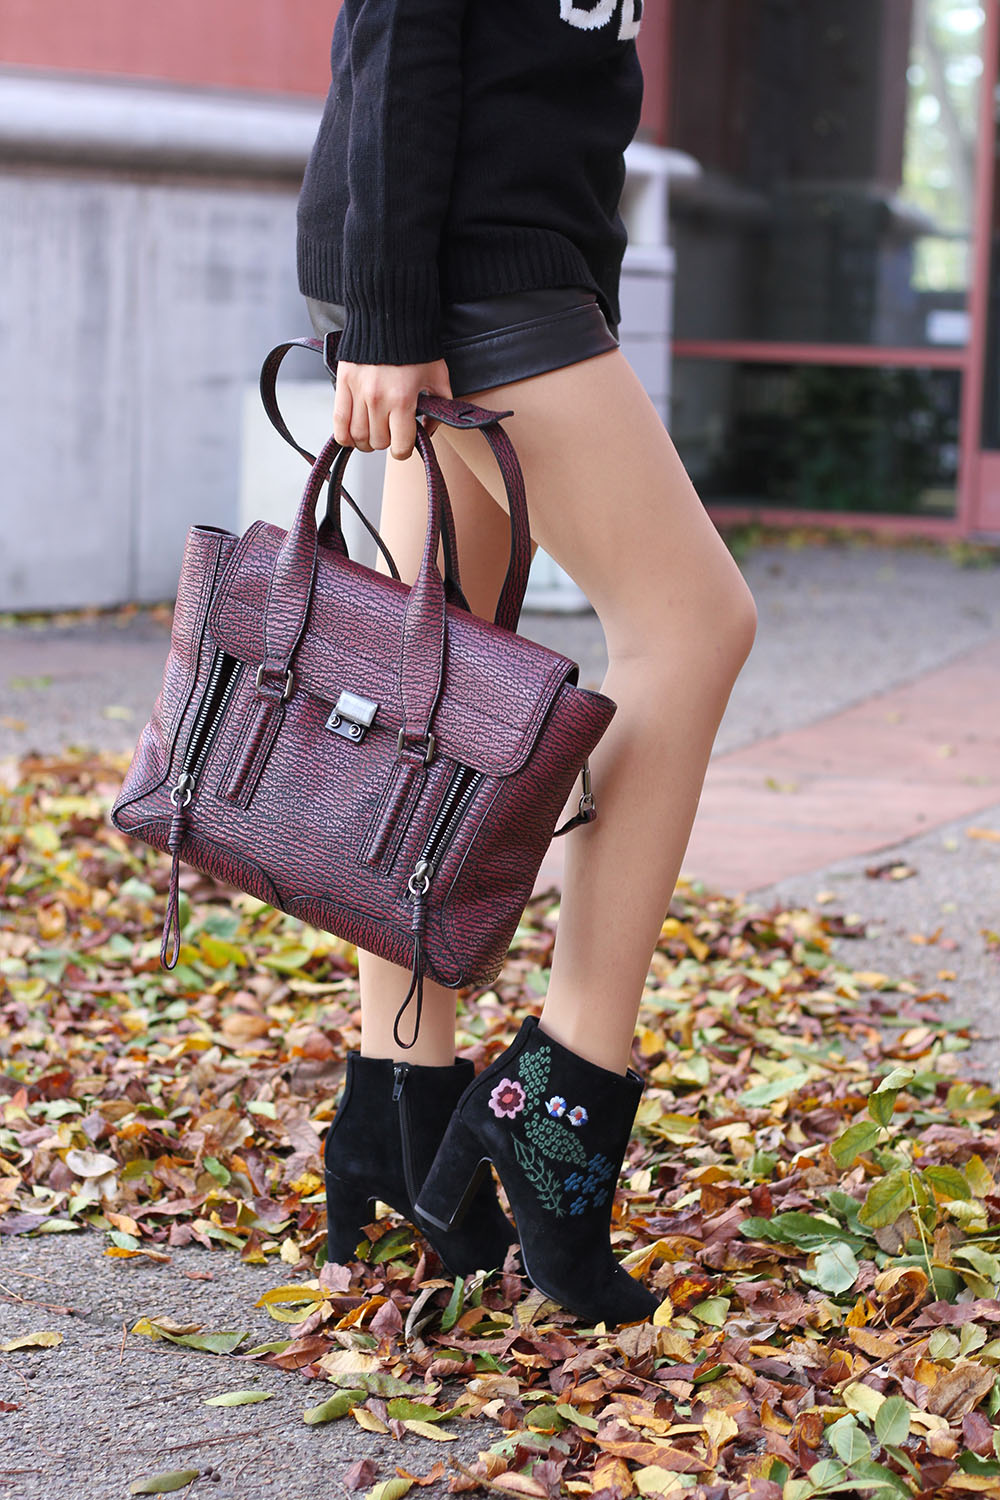 Embroidered Floral Suede Black Booties Nanette Lepore_Adrienne Nguyen_Invictus_Winter Style